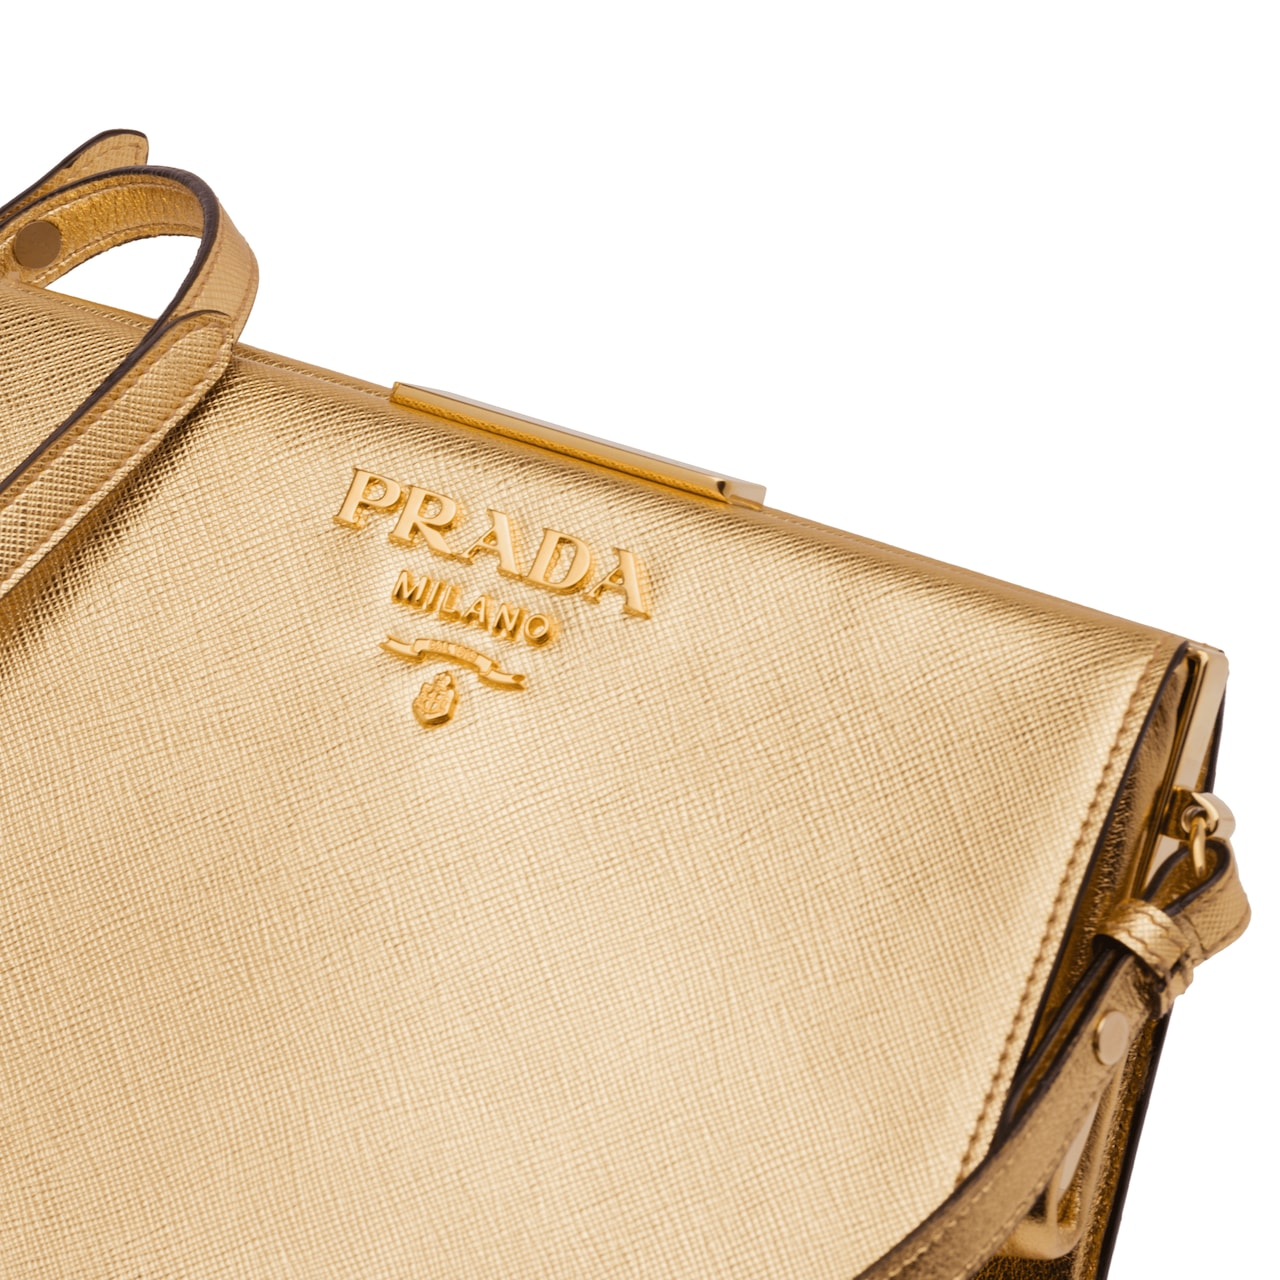 Prada Light Frame Leather Bag